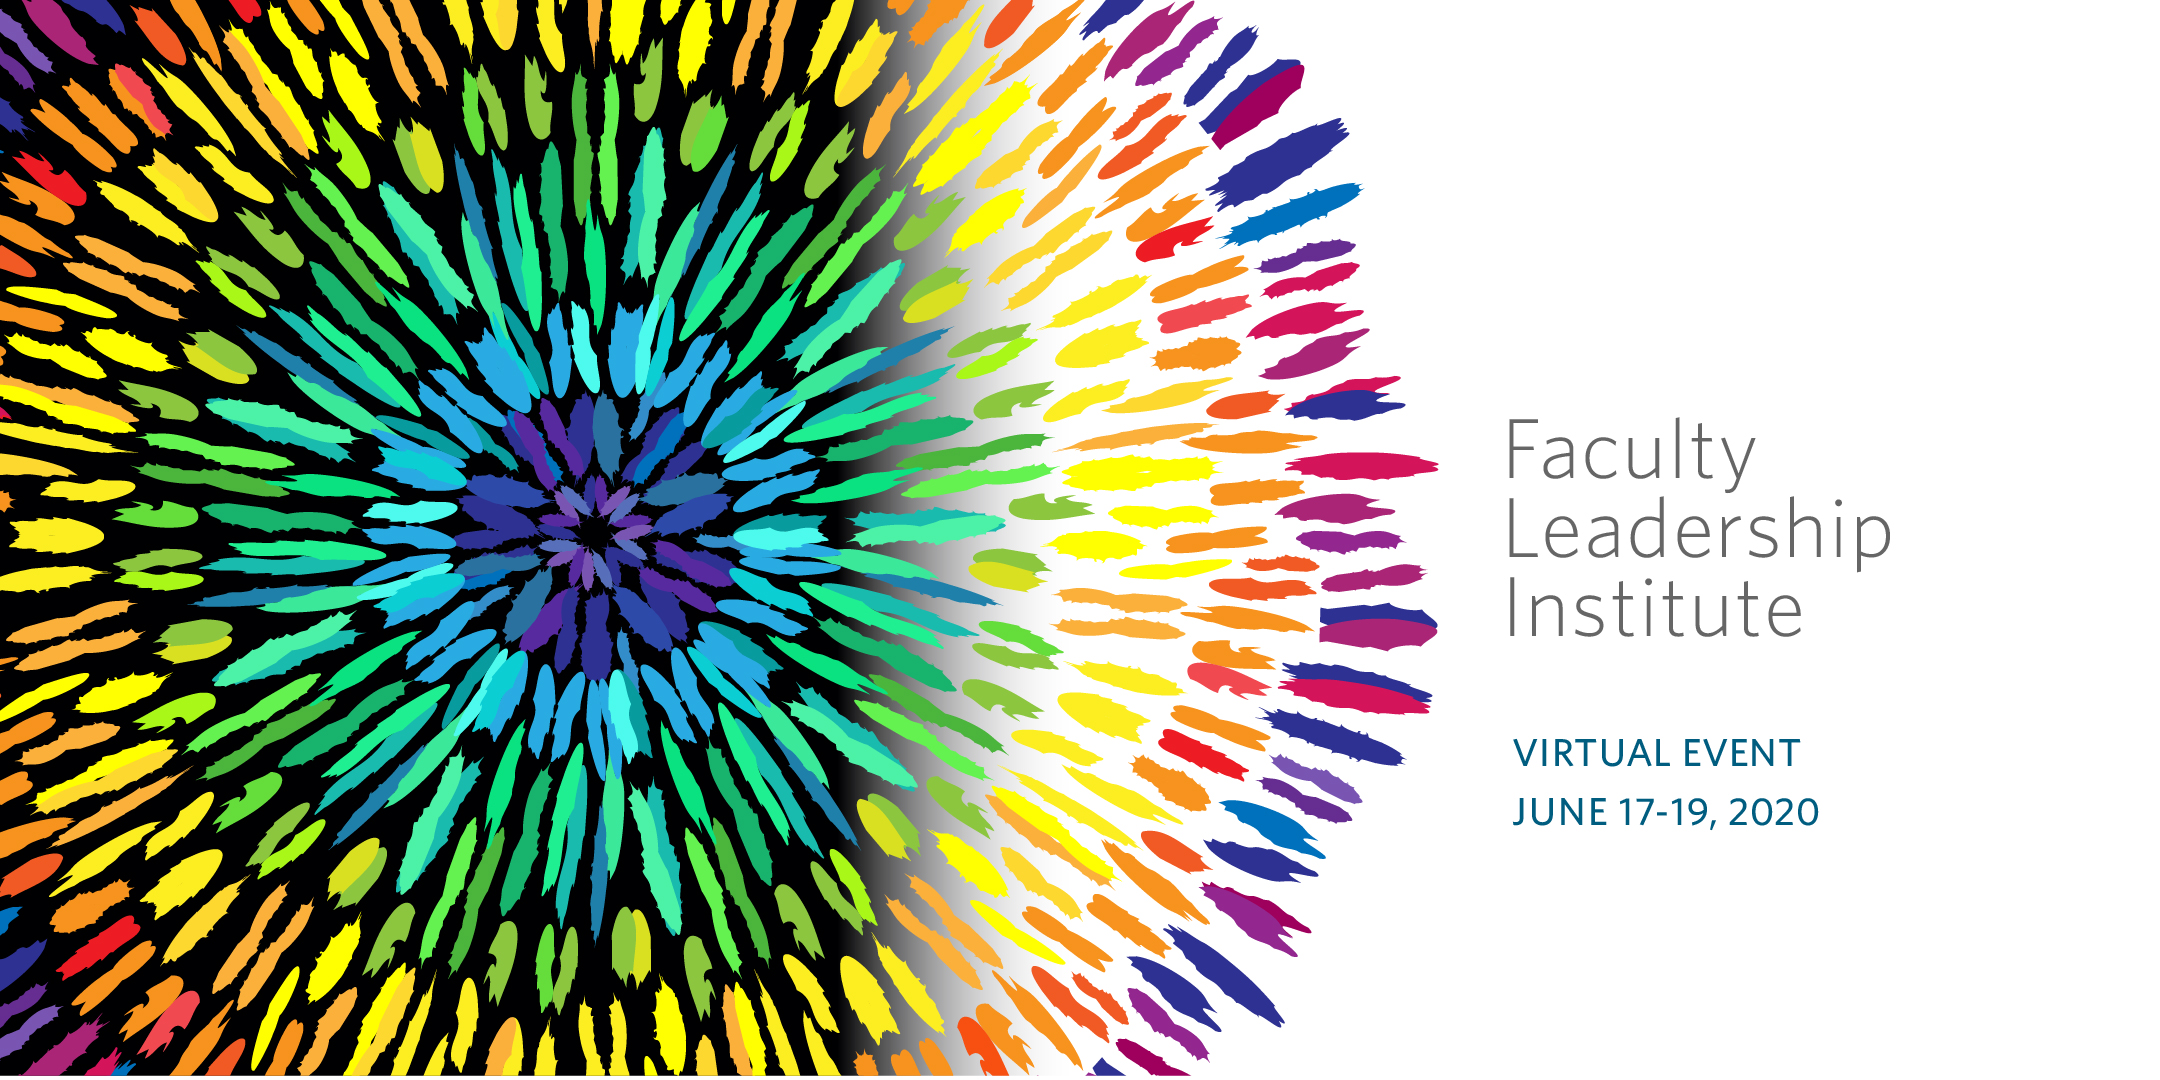 Factulty Leadership Institure event promotion image.